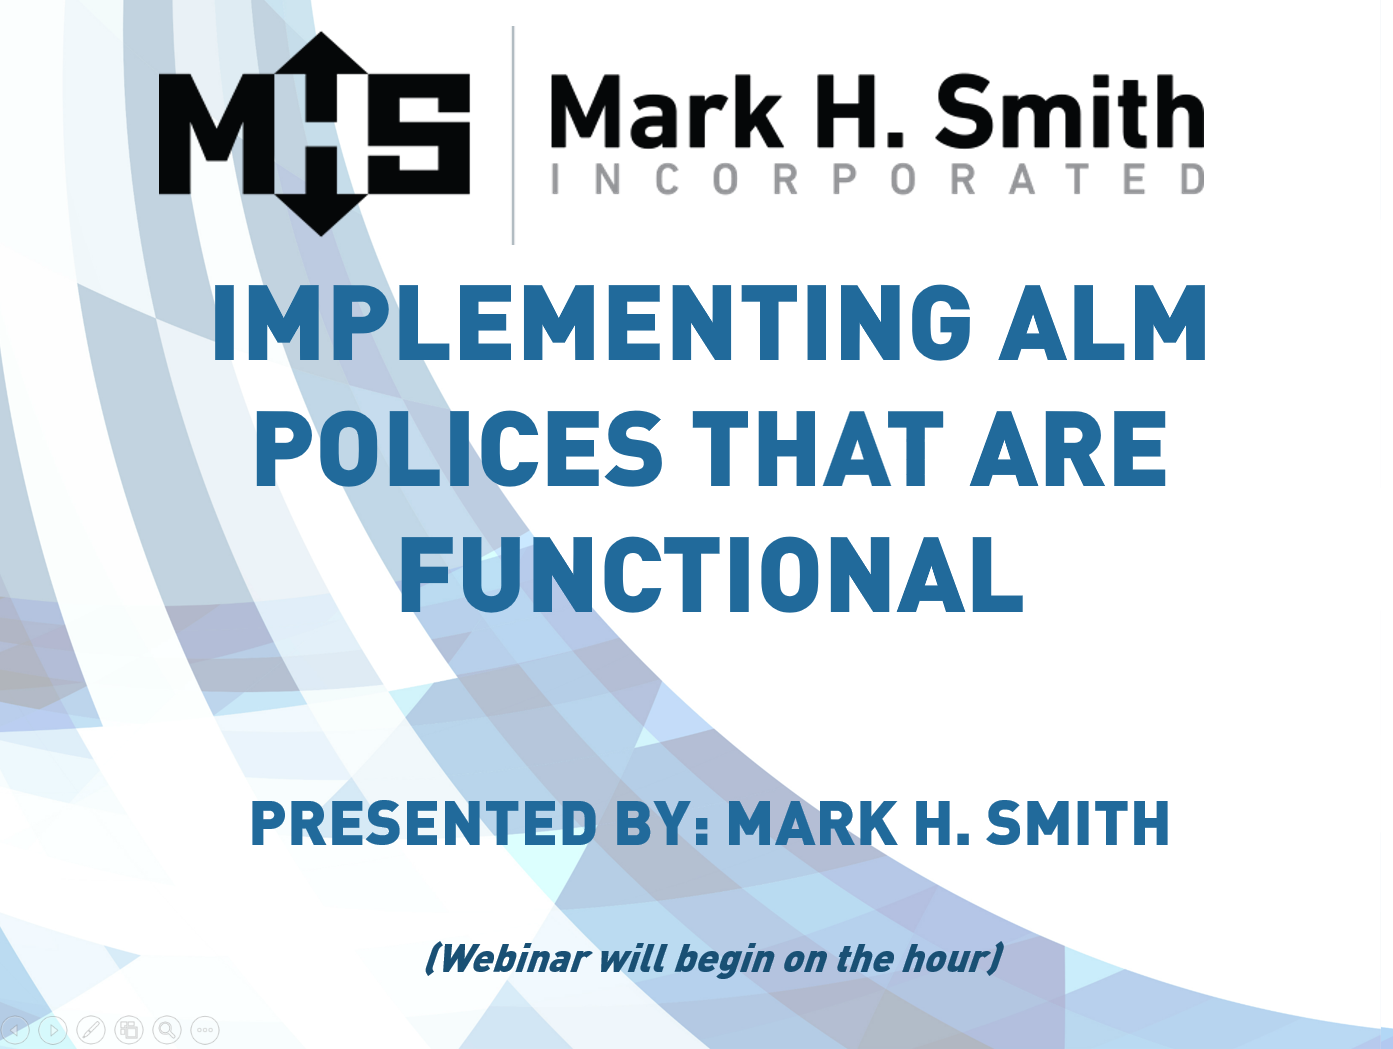 Implementing ALM Polices that are Functional Webinar Video